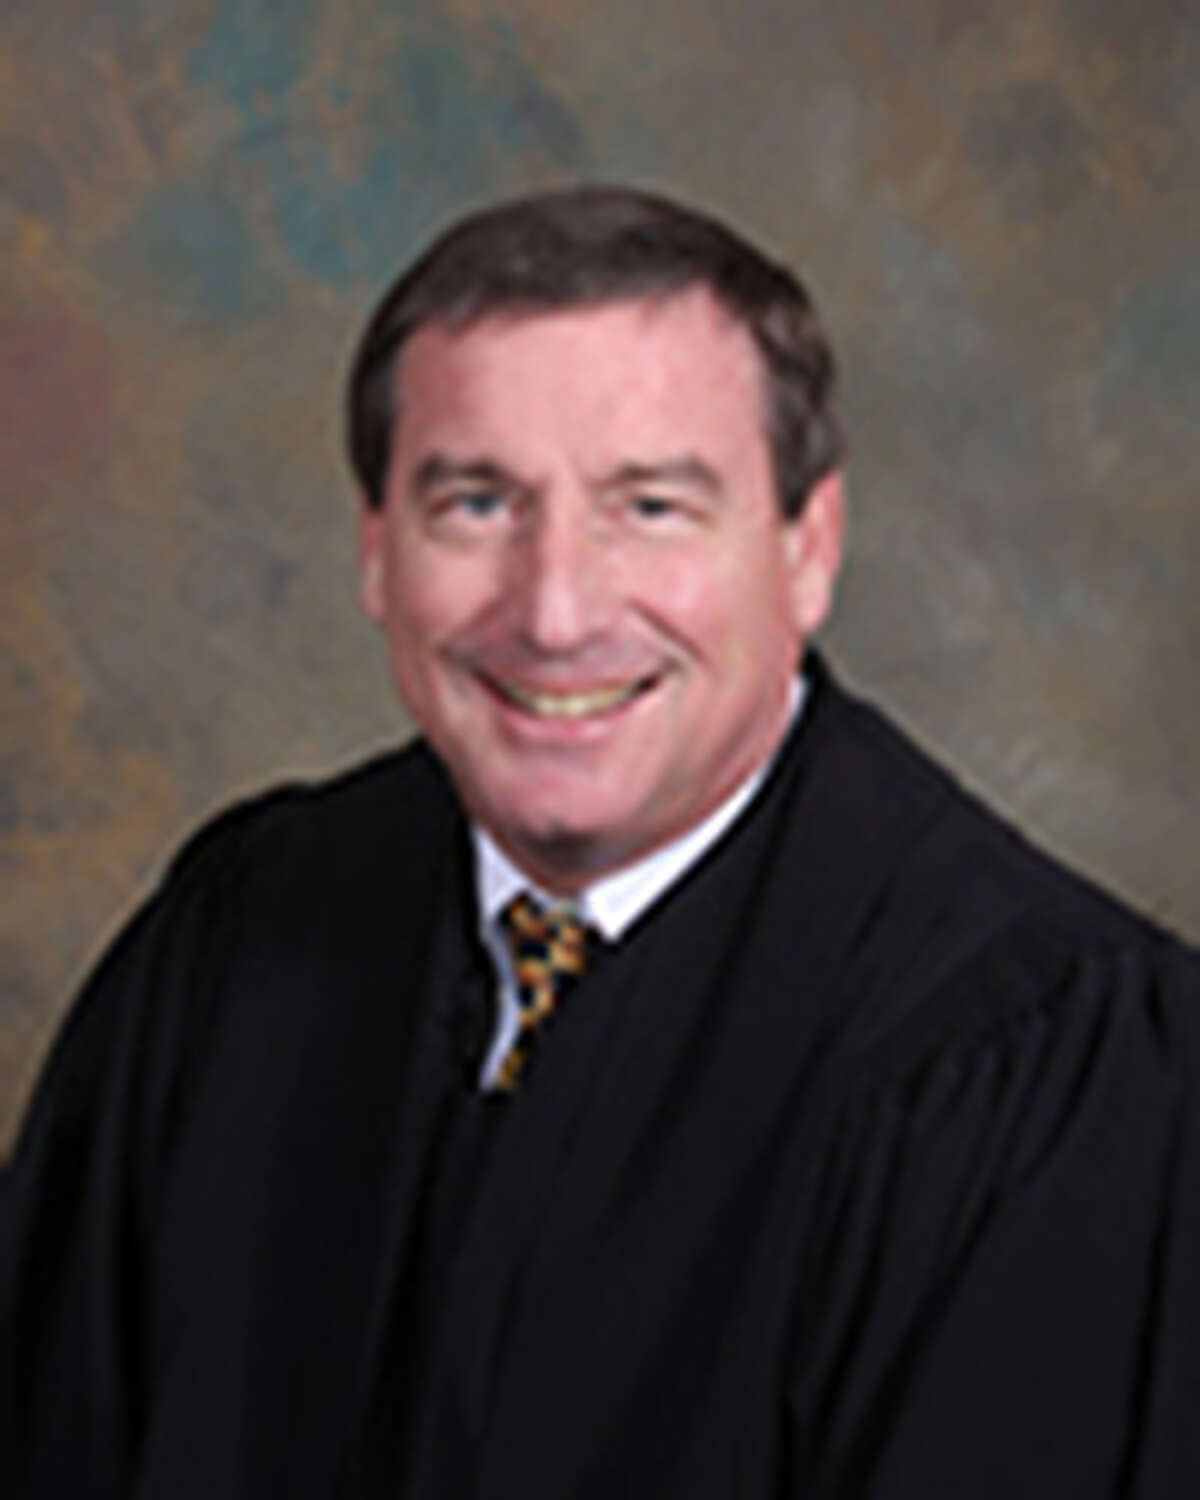 Judge Andrew S. Hanen also ordered ethics classes for federal attorneys.